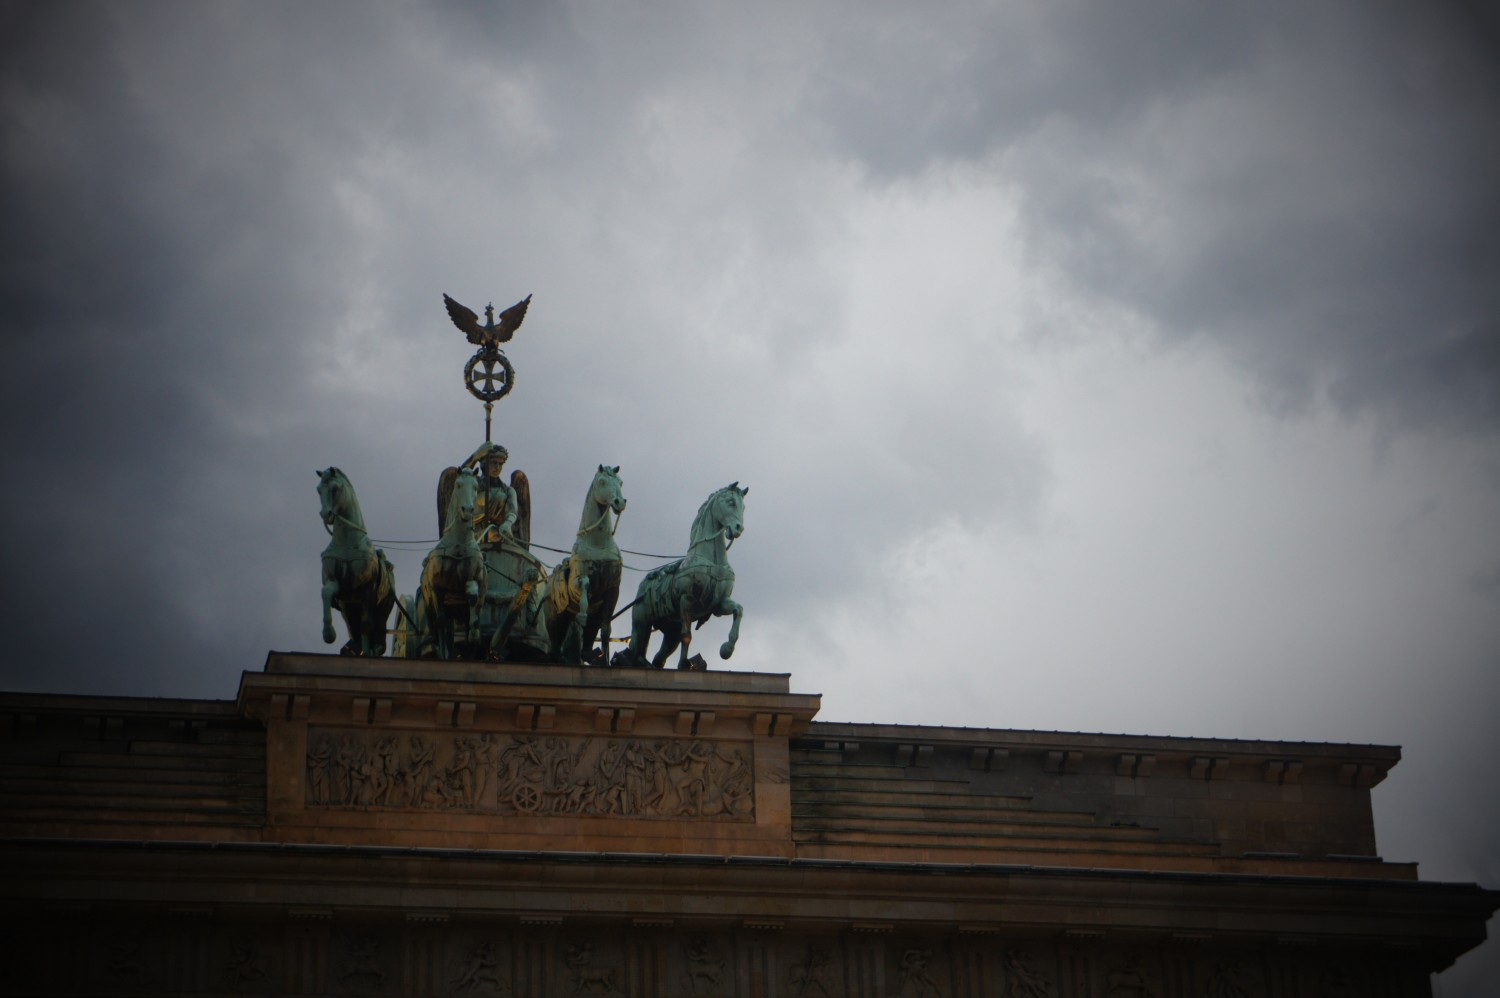 Brandenburger Tor, before the rain rolls in.